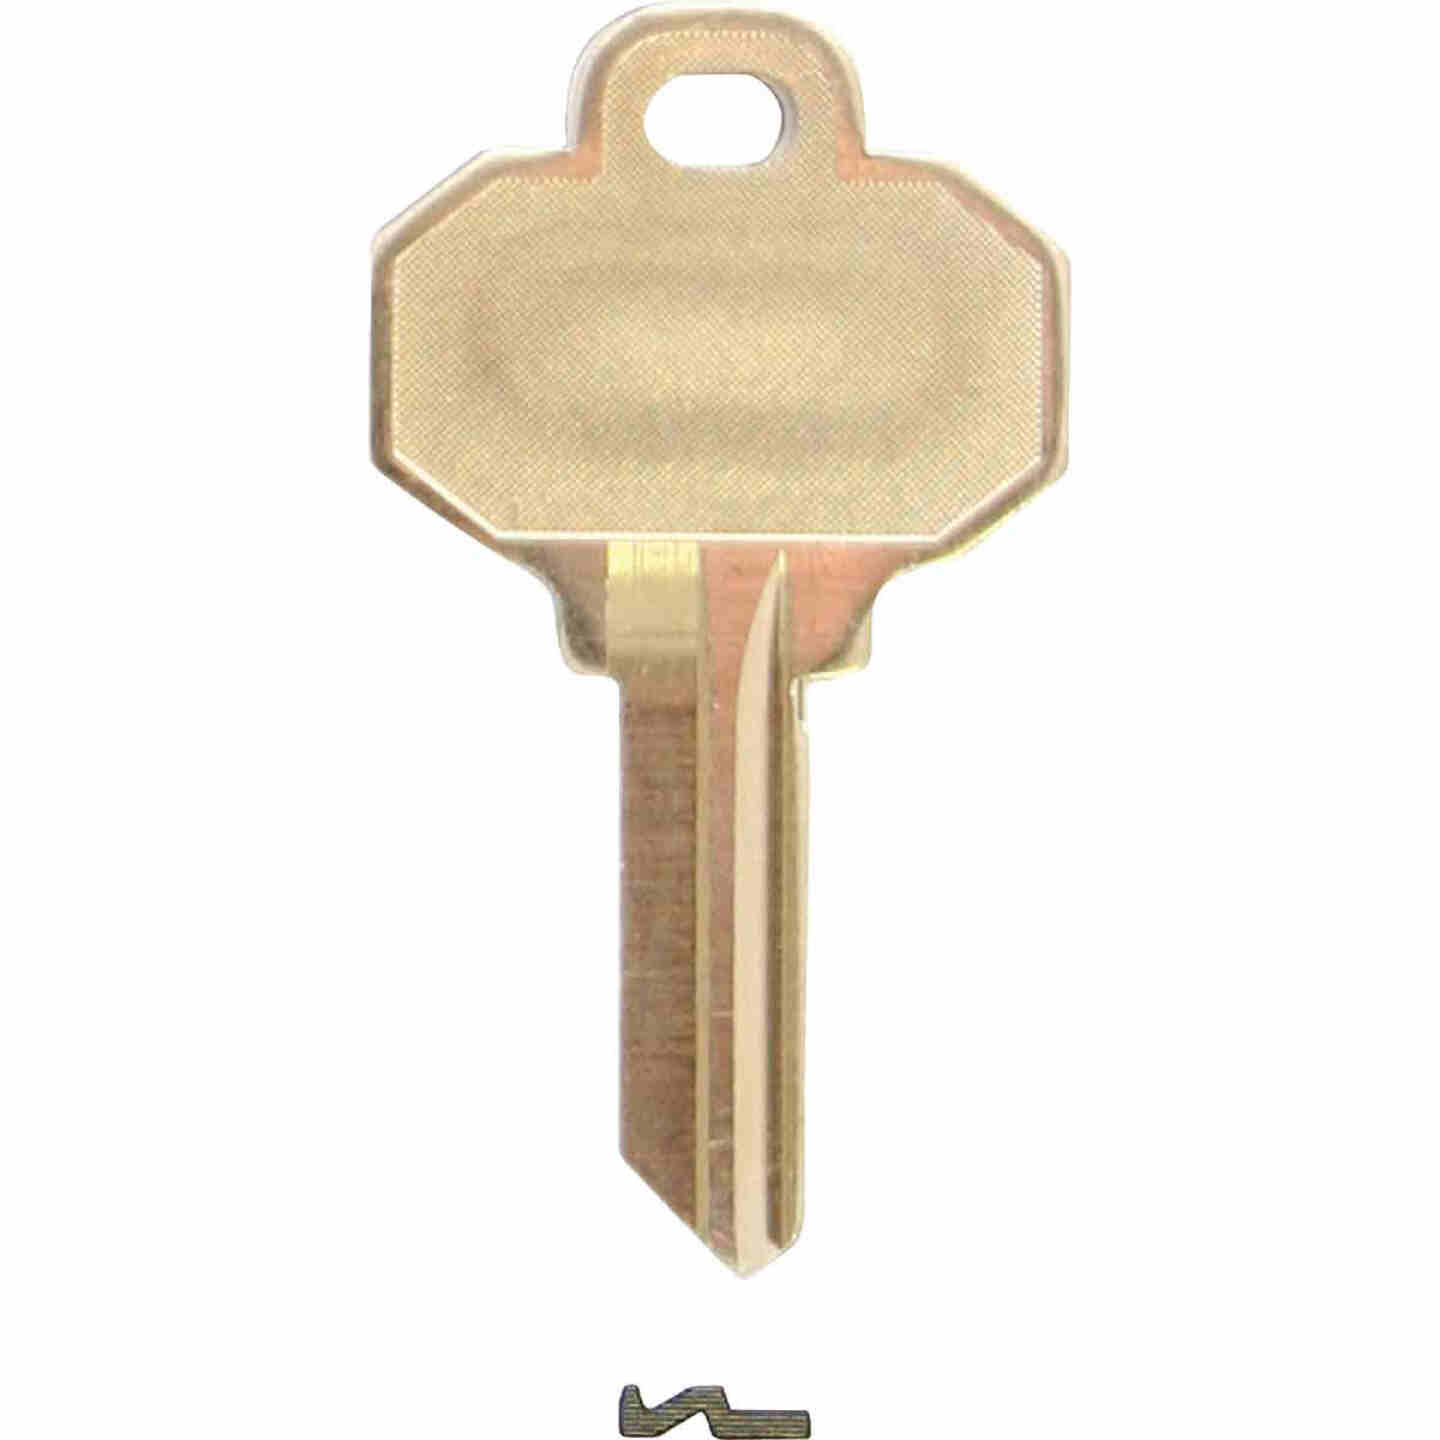 ILCO Baldwin Estate House Key, Blank BW2 (10-Pack) Image 1